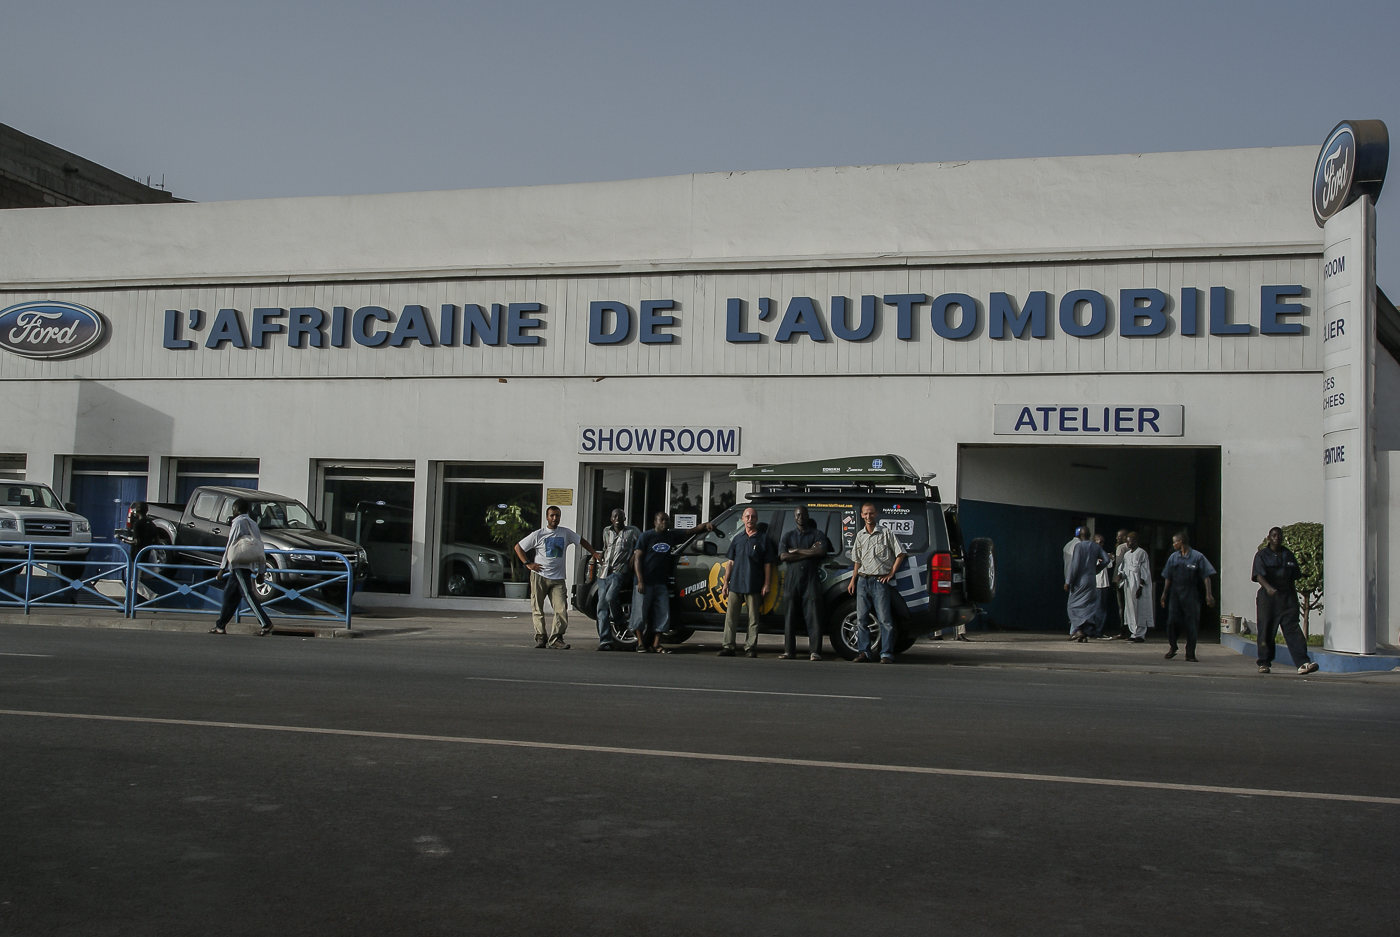 Thank you L'Africaine de l'Automobile in Dakar!